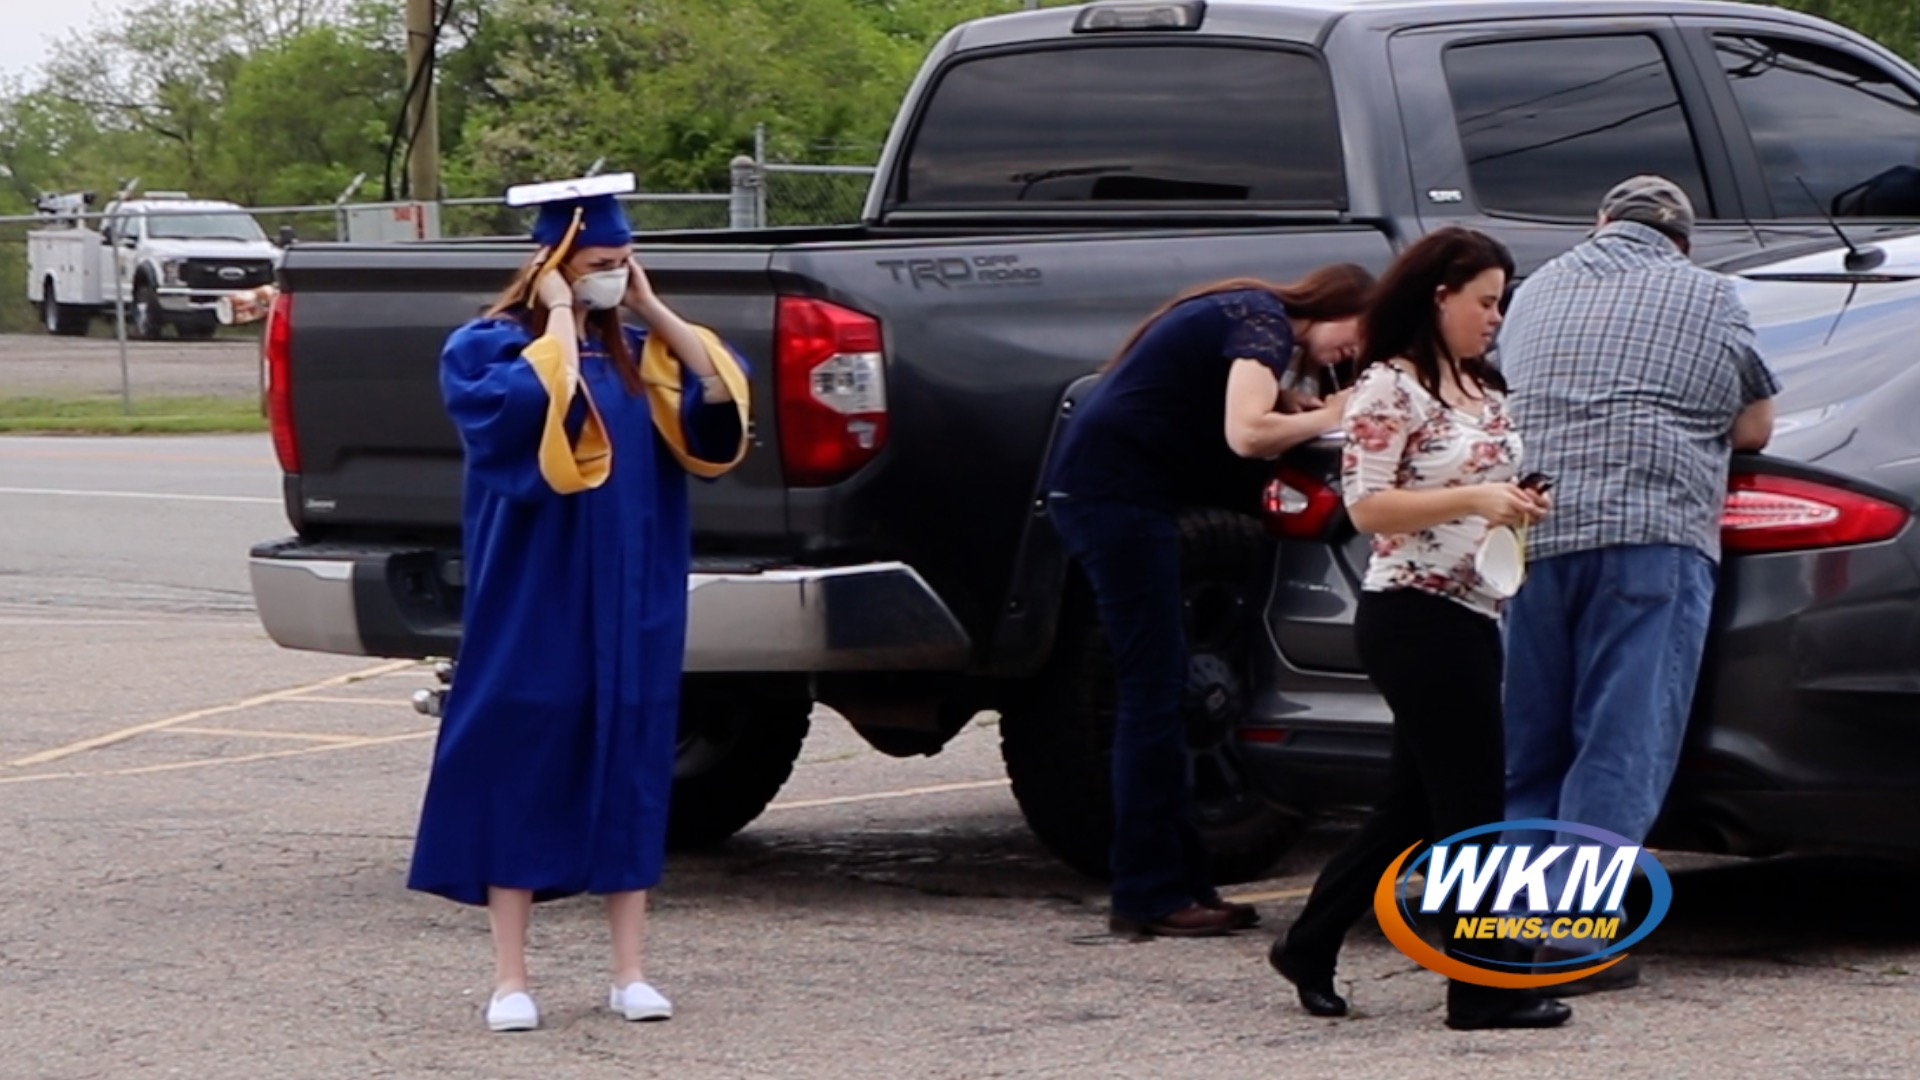 Trimble County High School Prepares for Drive-In Graduation